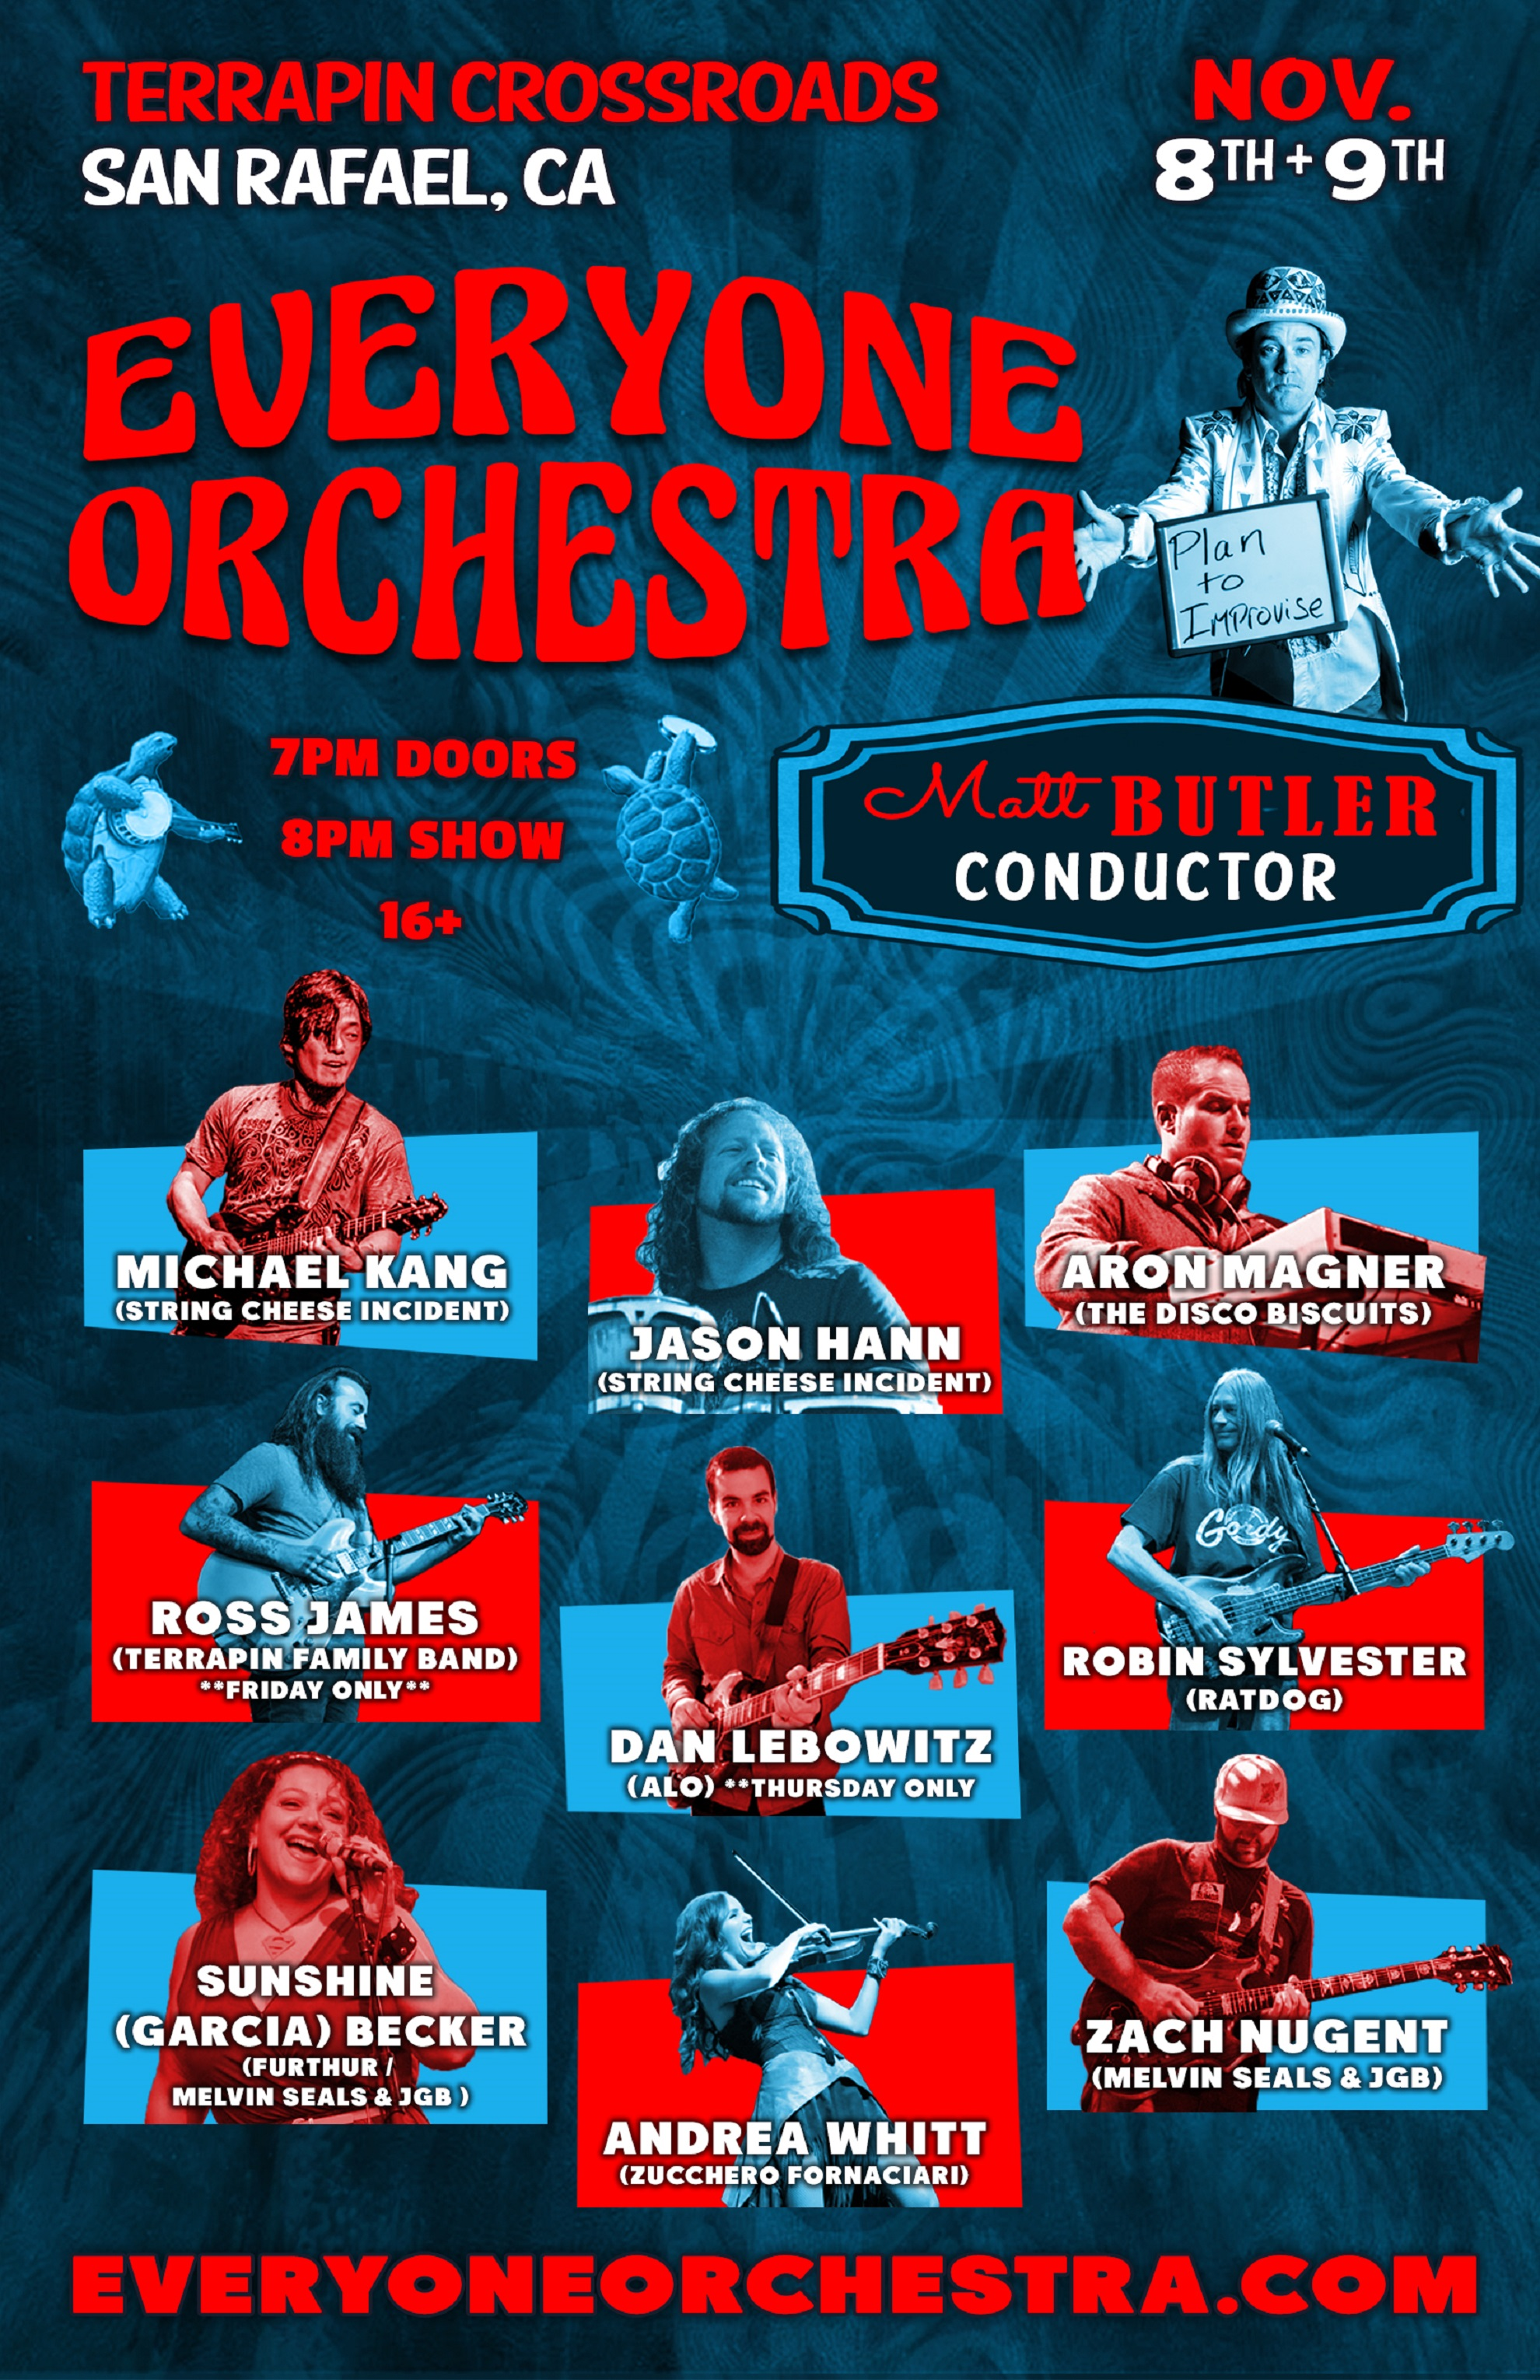 Everyone Orchestra at Terrapin Crossroads, Nov 8-9